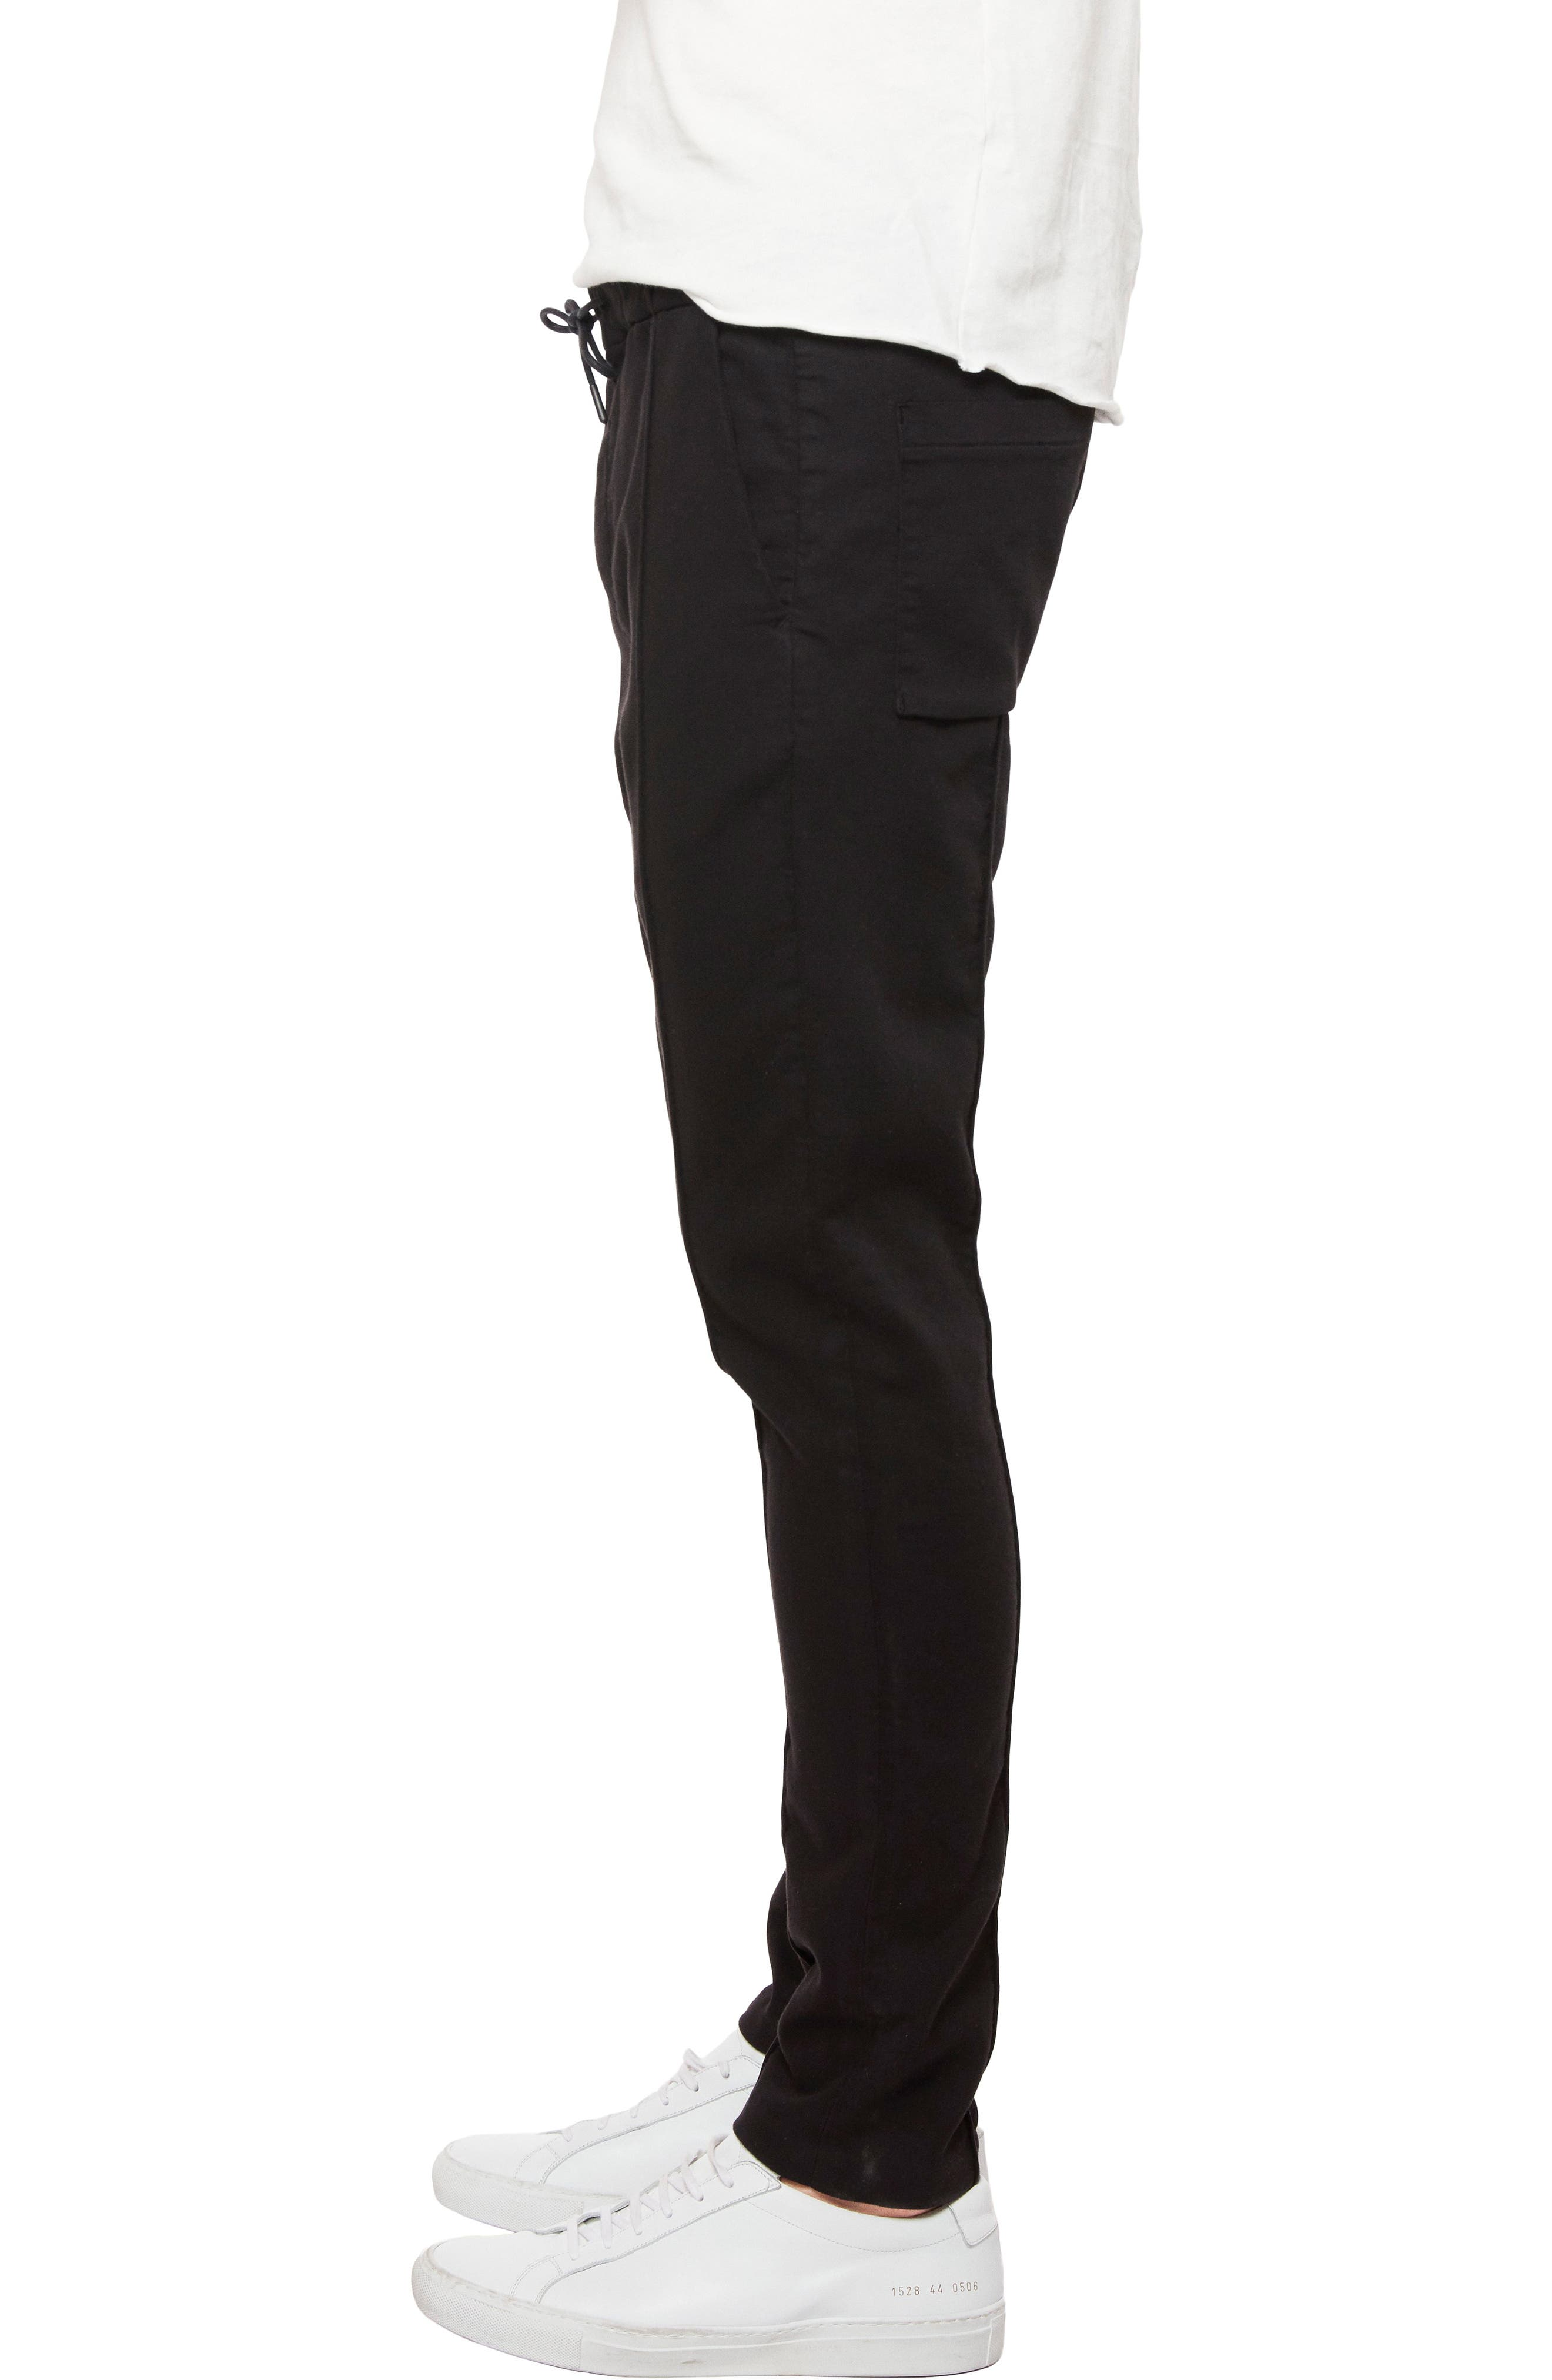 Wakat Relaxed Fit Jogger Pants,                             Alternate thumbnail 3, color,                             BLACK